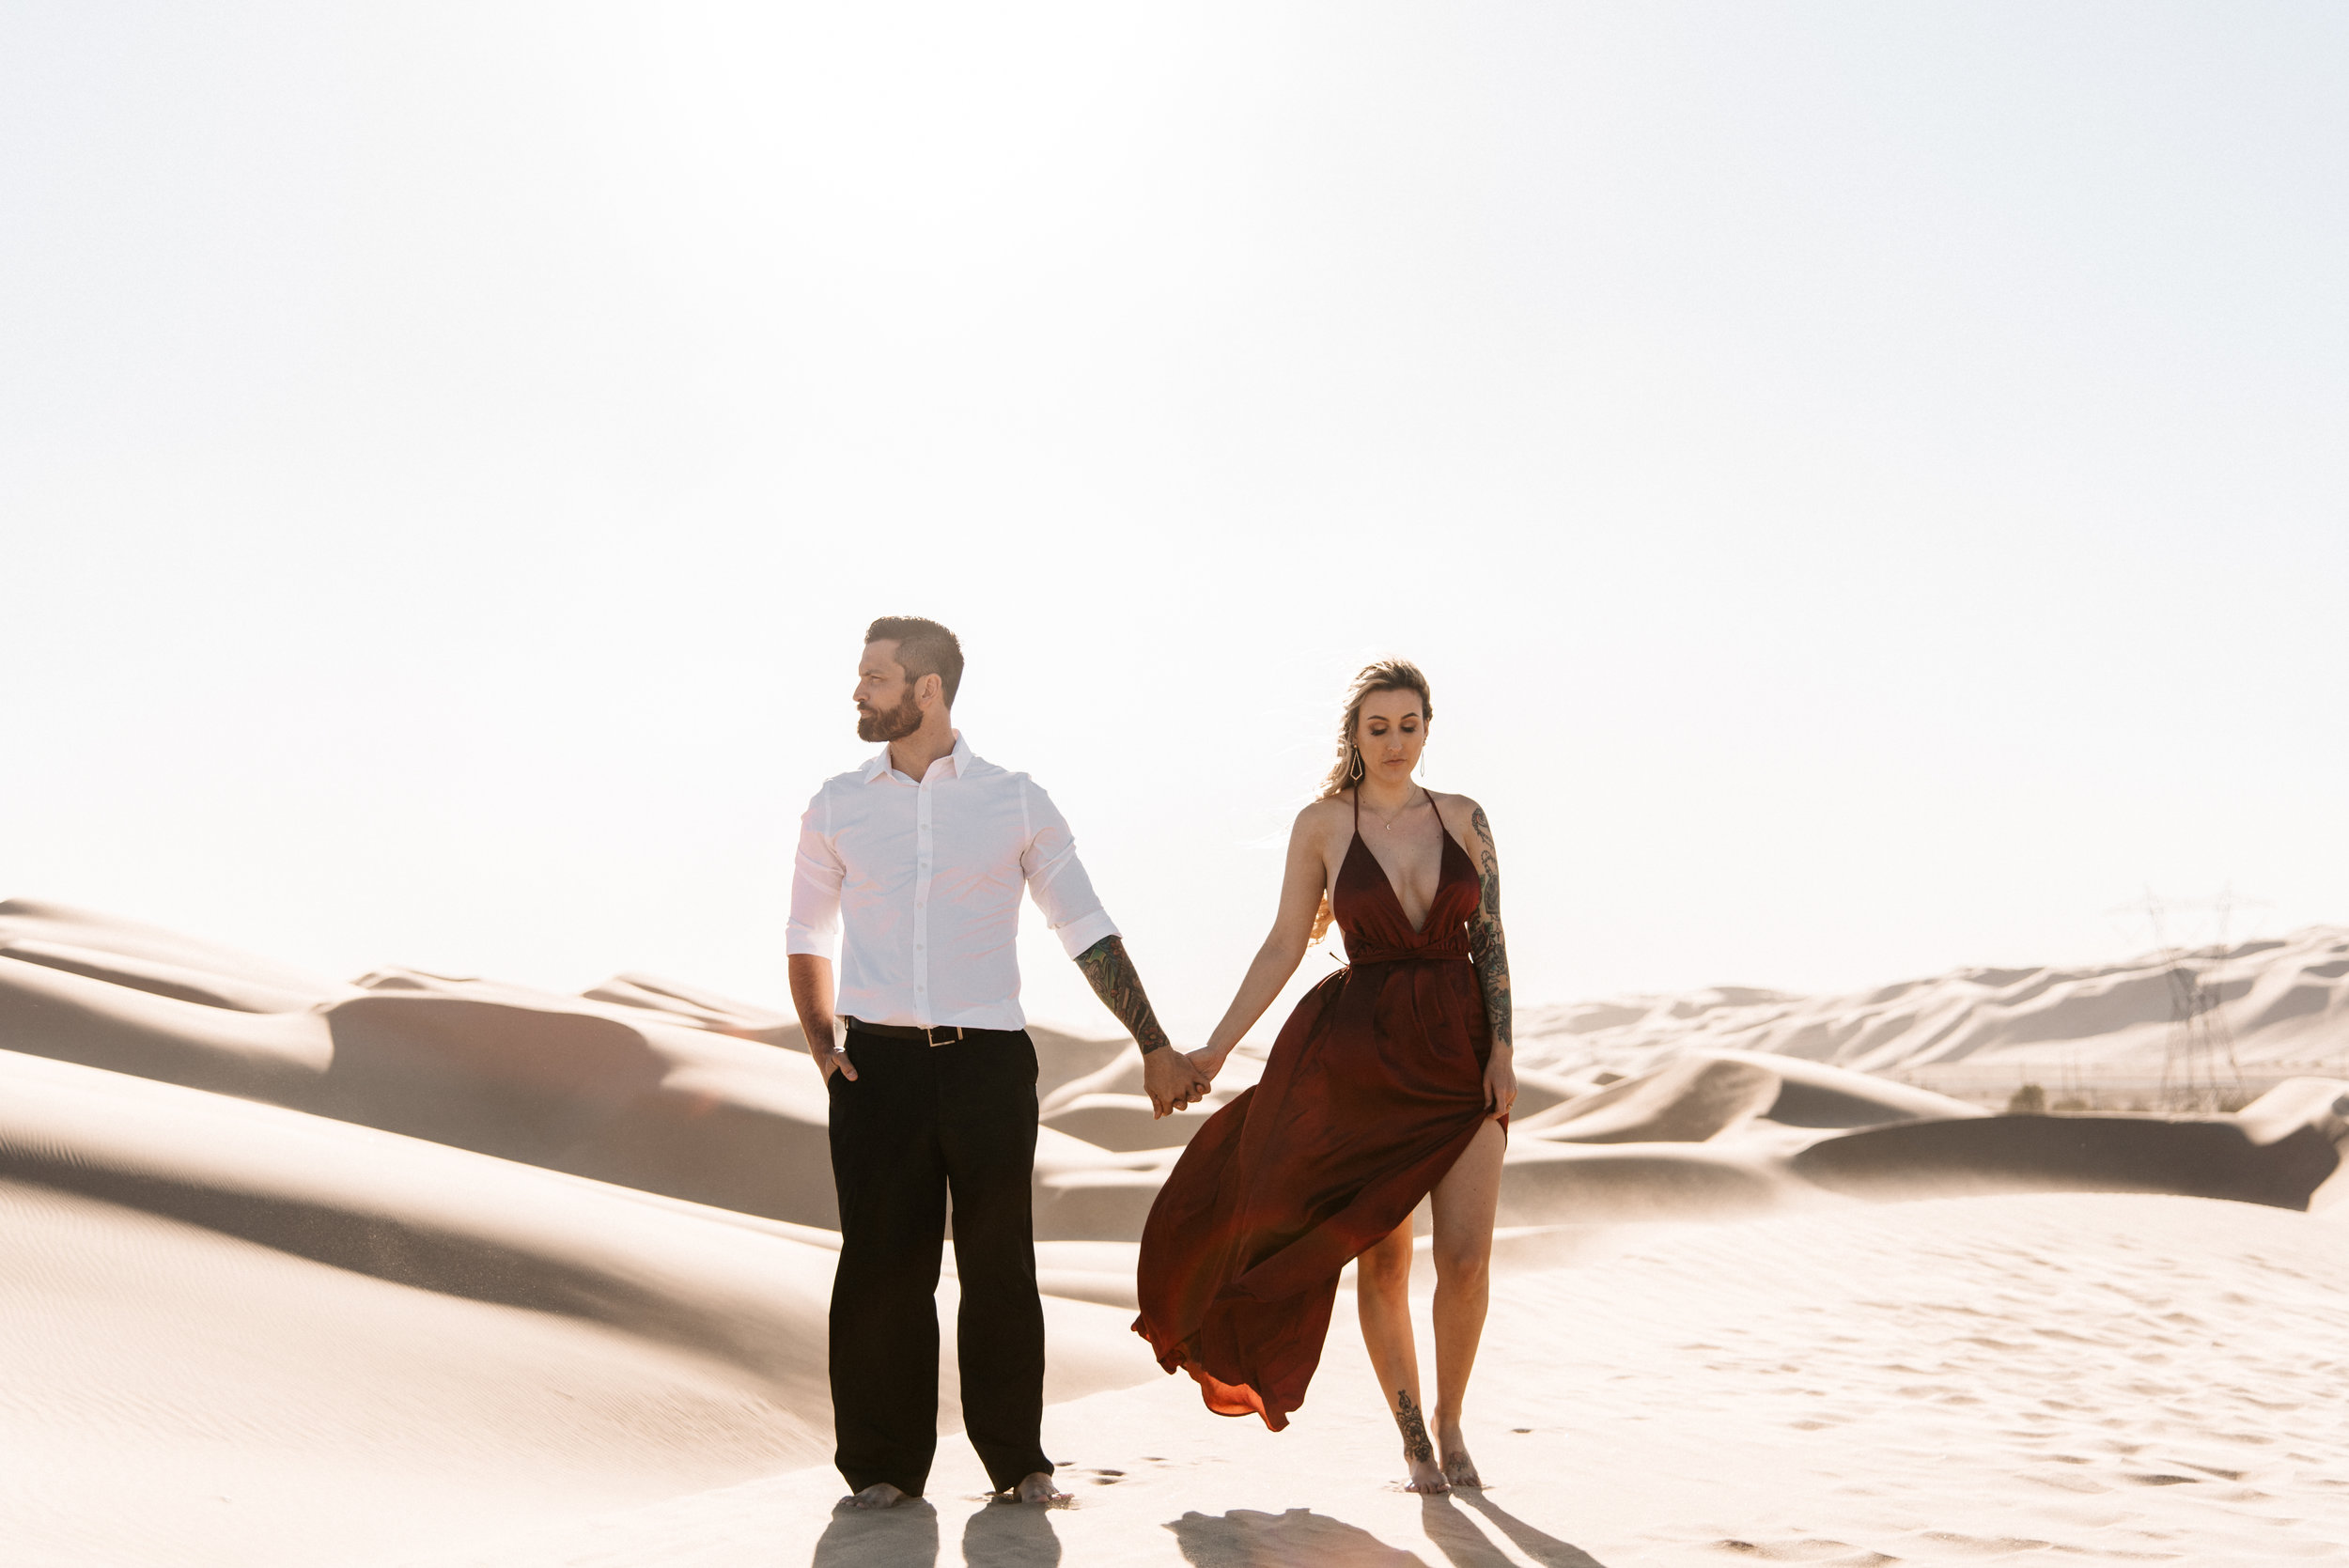 SamErica Studios - Modern San Diego Engagement Photographer - Adventure Engagement Session in Glamis Sand Dunes California-31.jpg